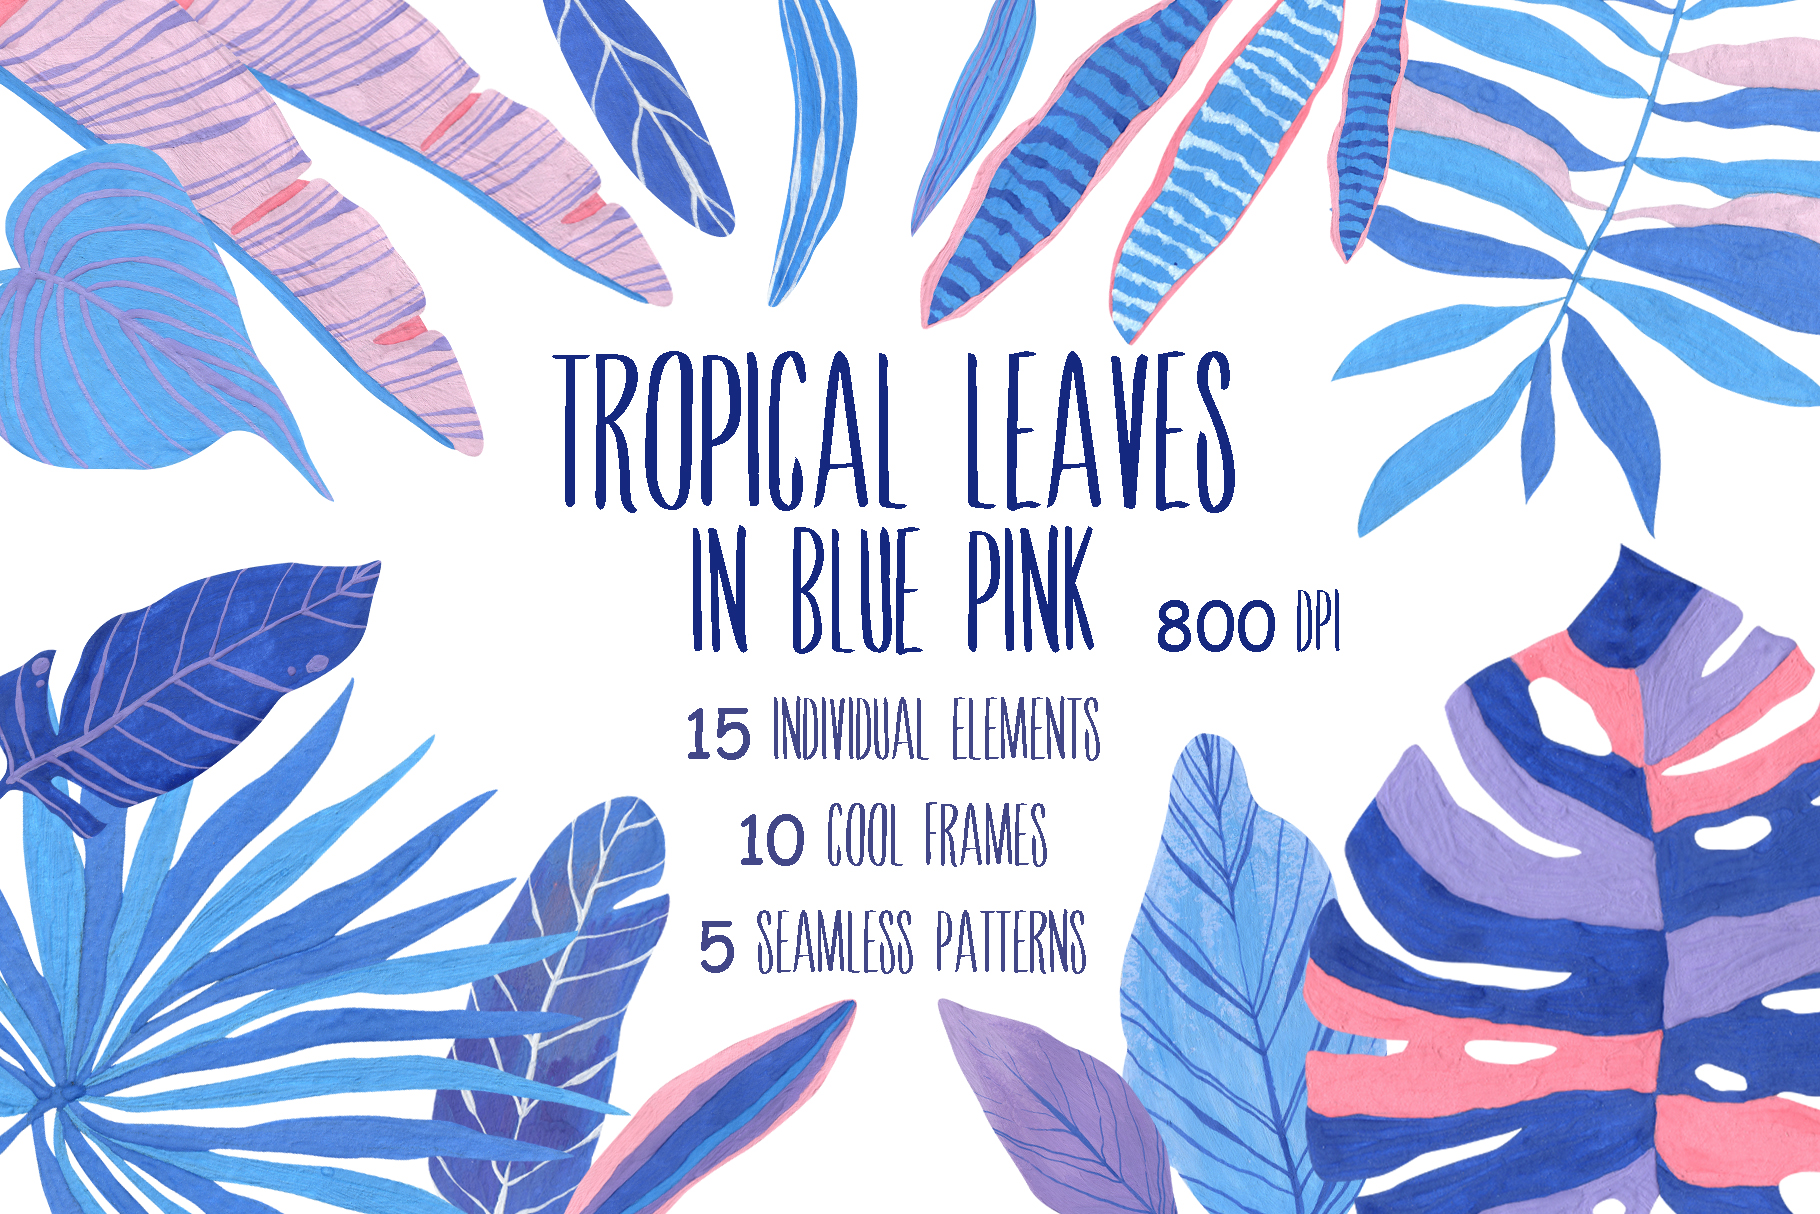 Download Free Tropical Leaves In Blue Pink Graphic By Vasharisovasha for Cricut Explore, Silhouette and other cutting machines.